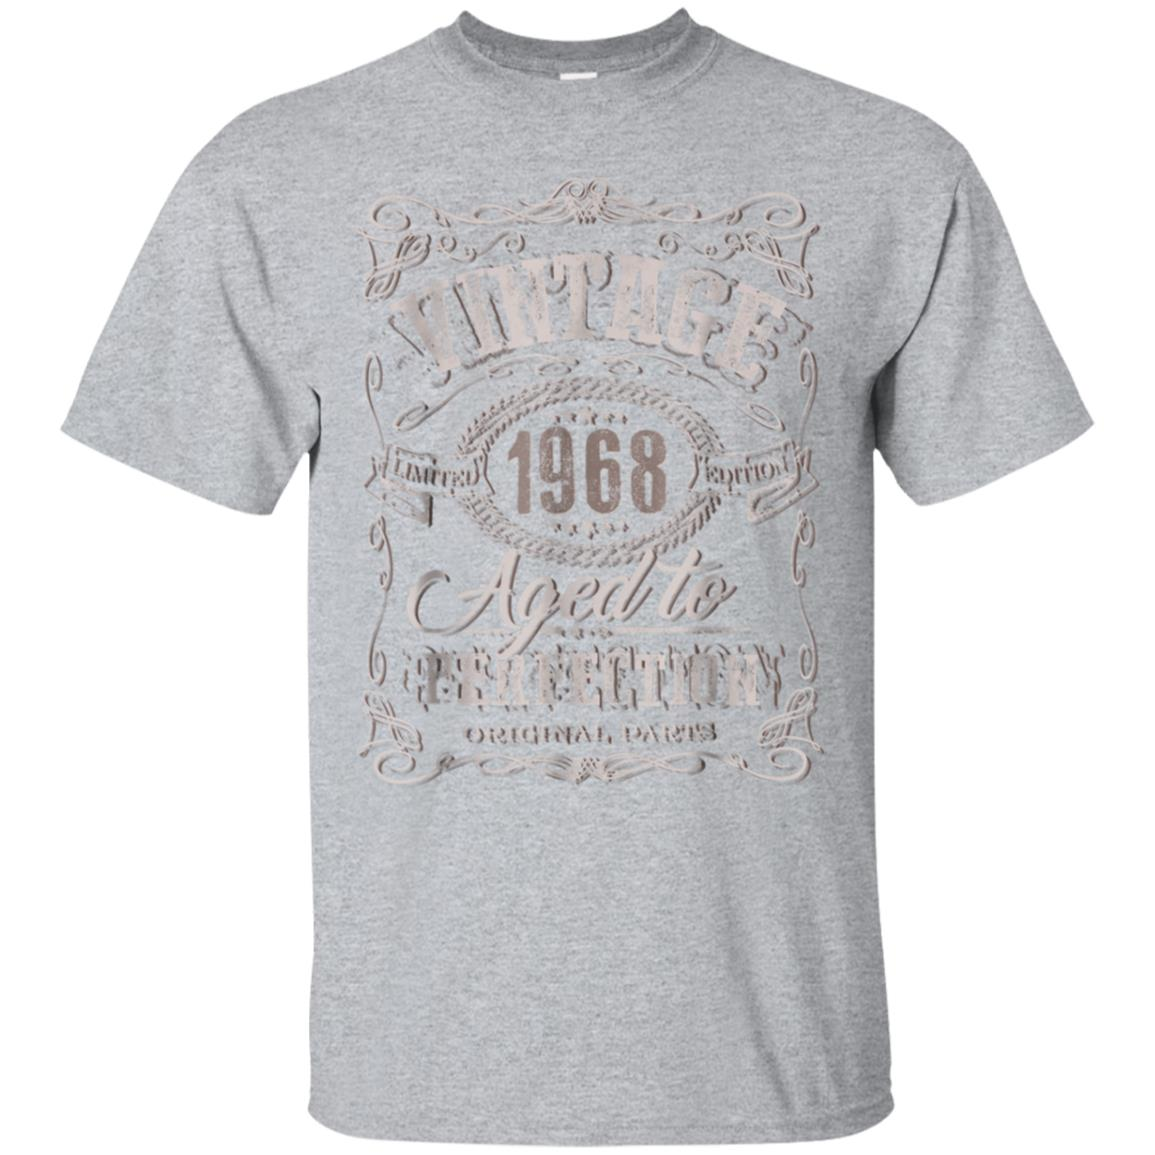 50th Birthday gift shirt Vintage dude 1968 50 year old shir 99promocode